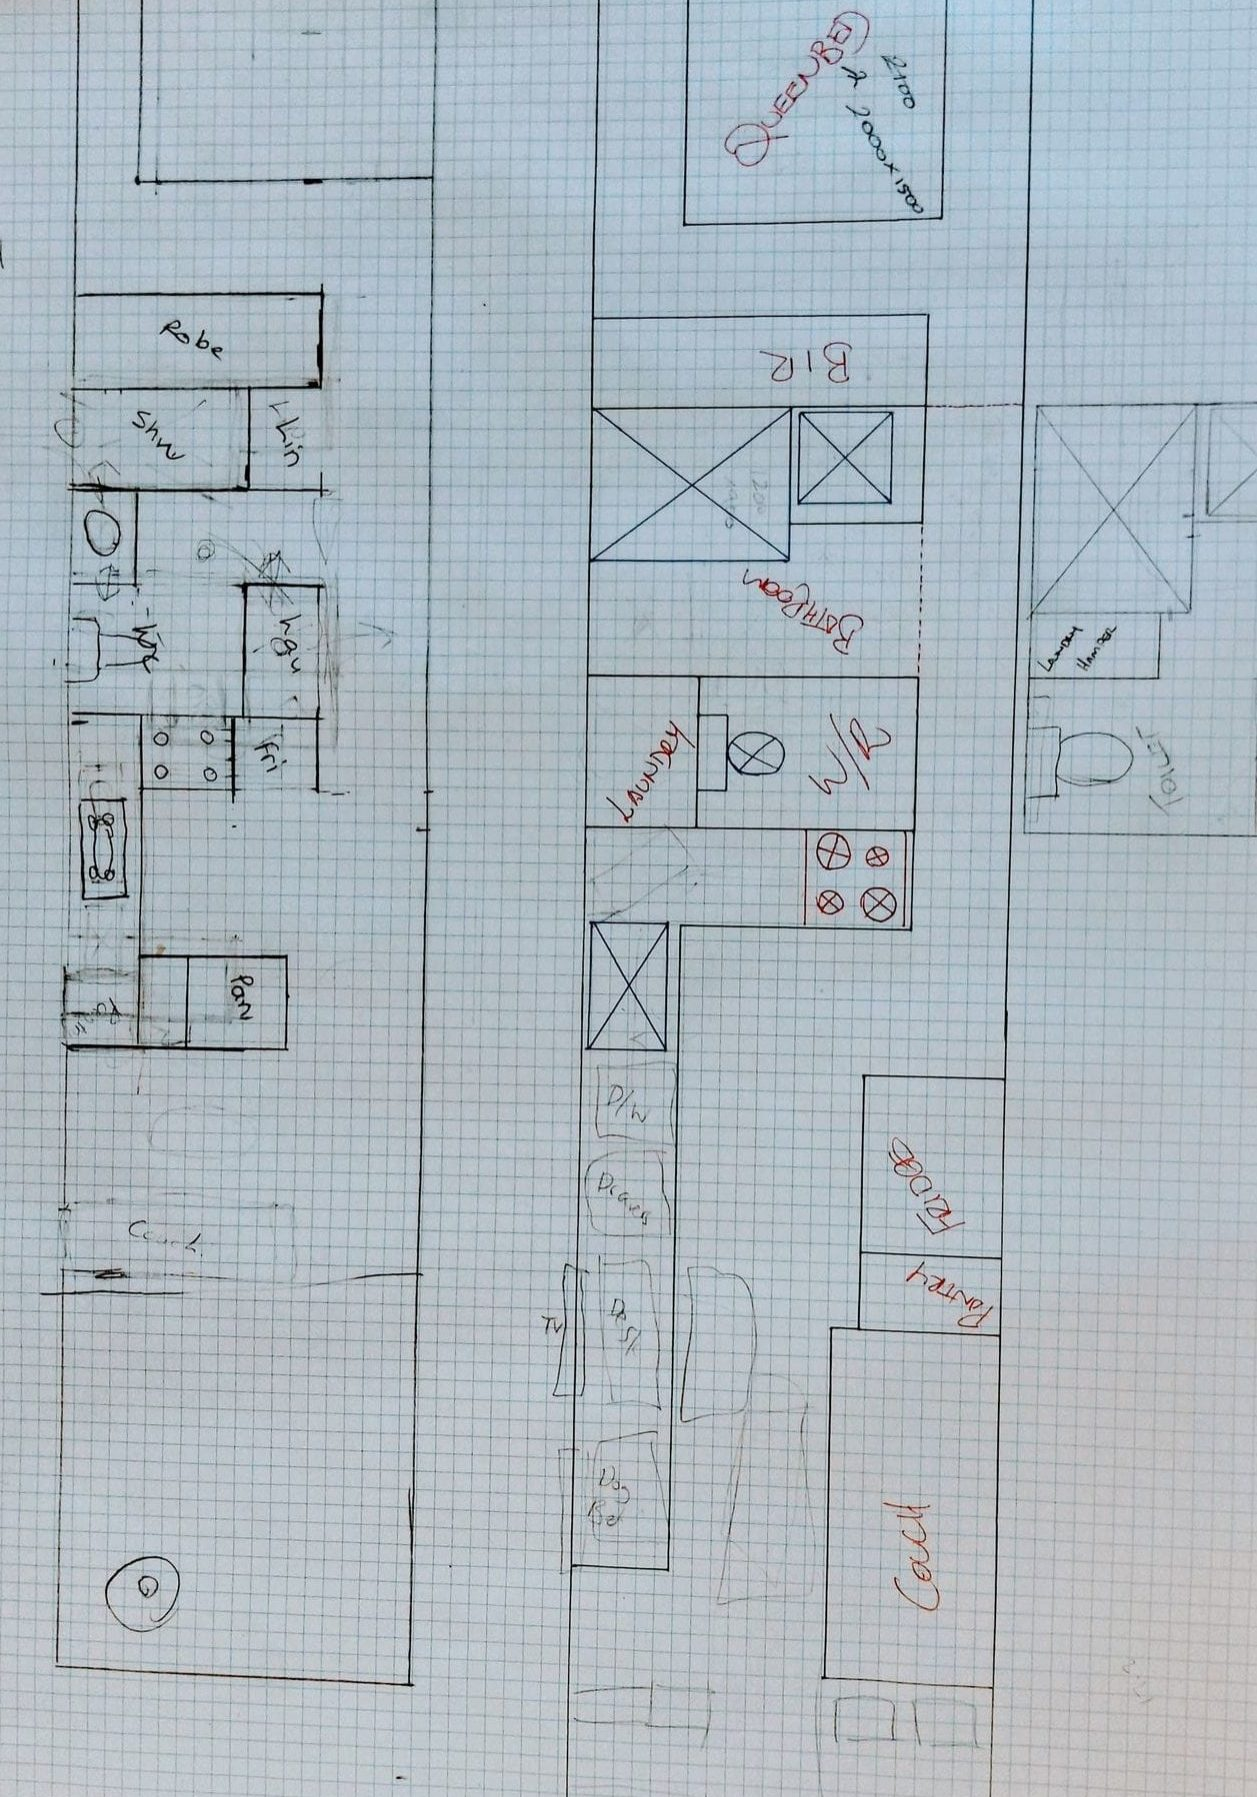 Rough drafts of layout